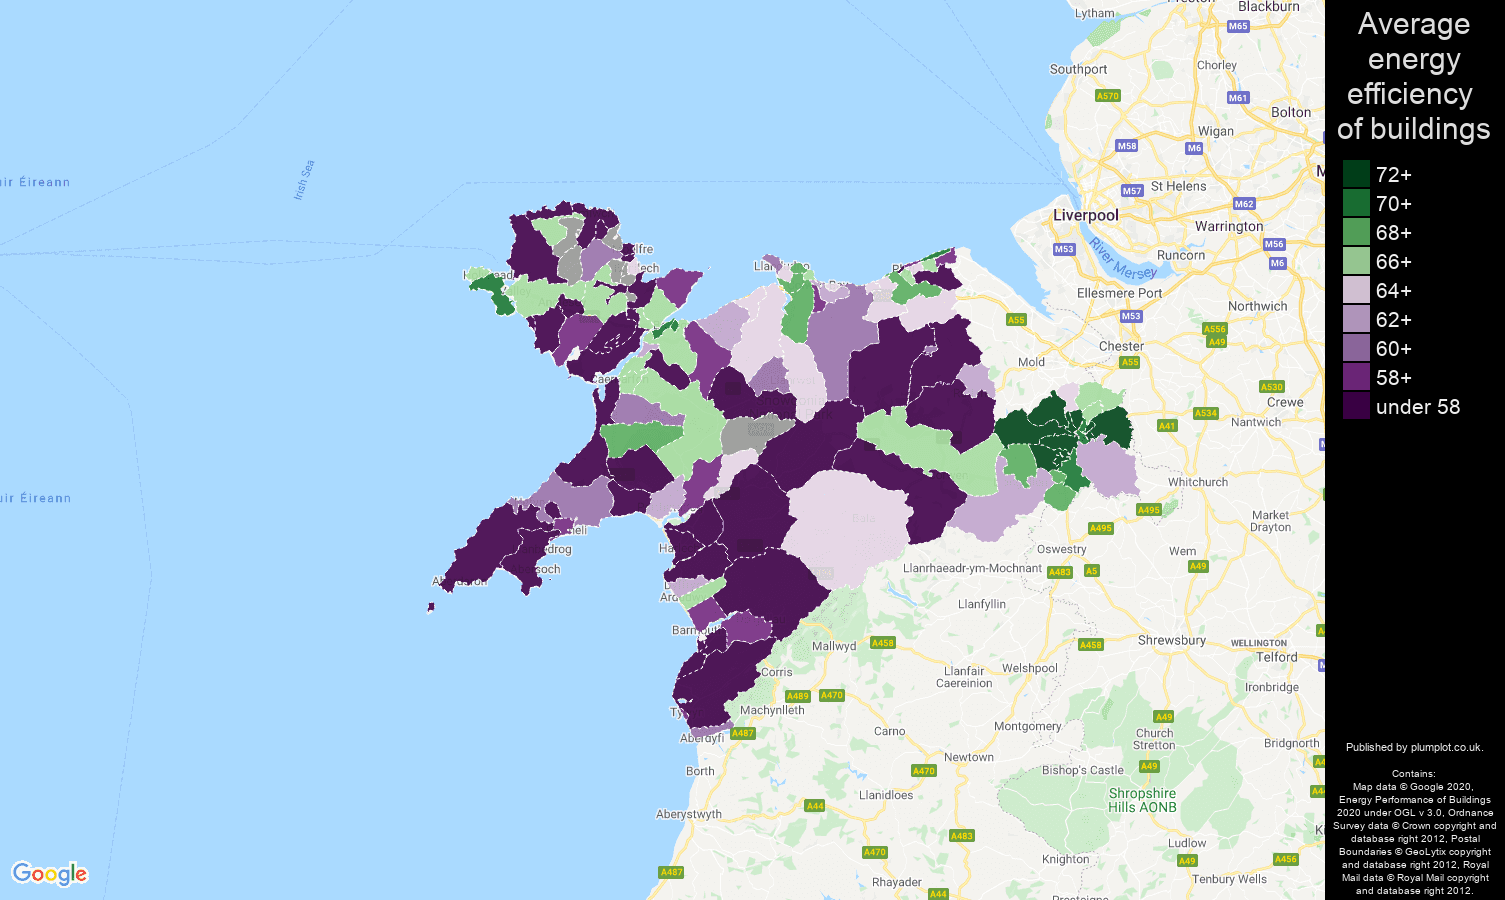 Llandudno map of energy efficiency of flats